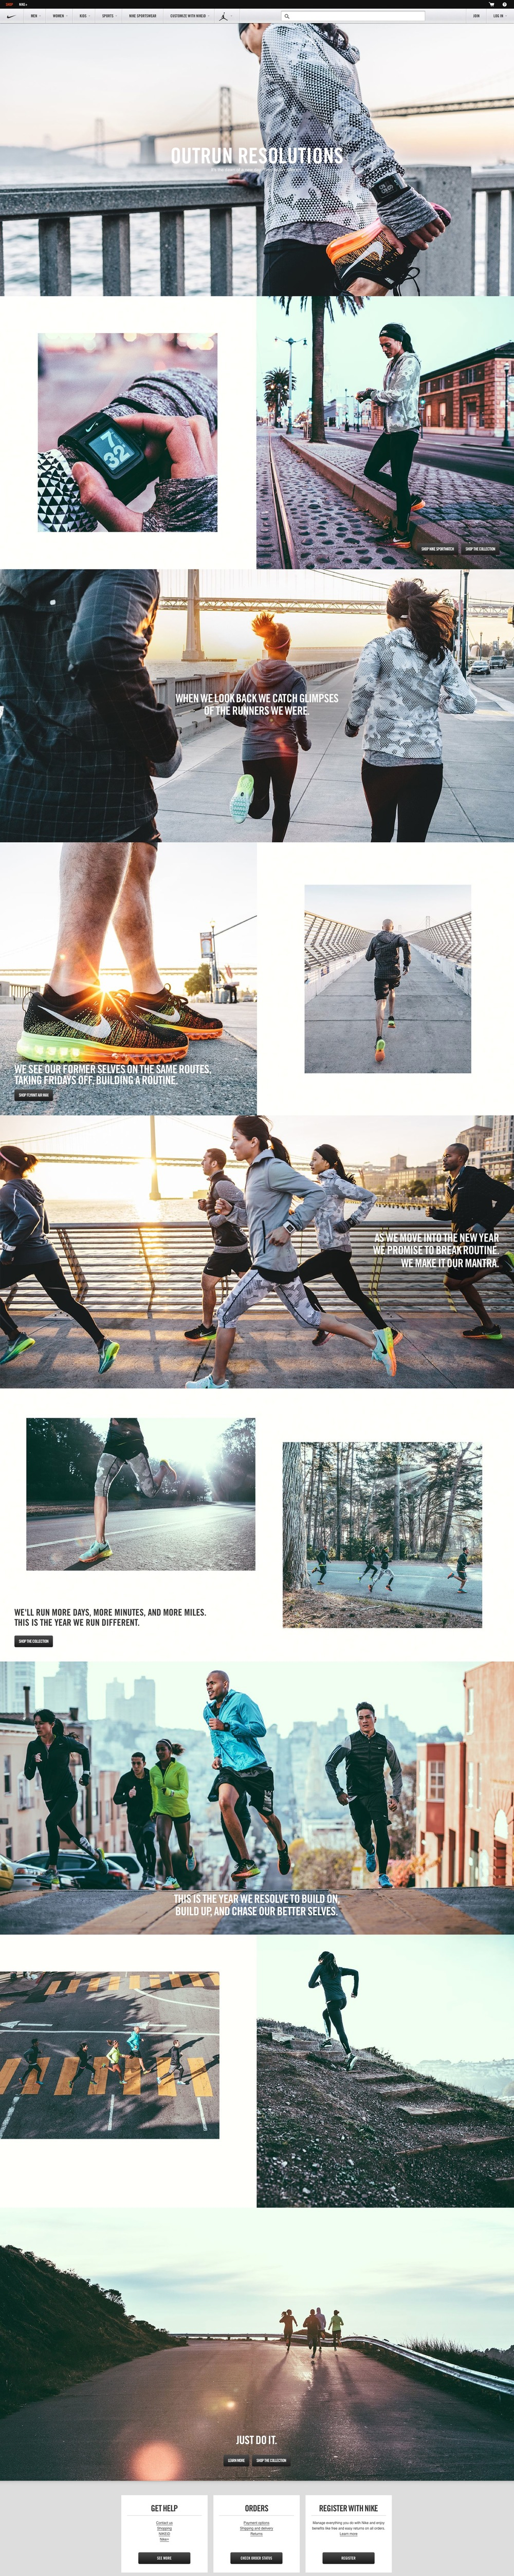 Outrun Resolutions. Nike.com. Nike.com.jpg